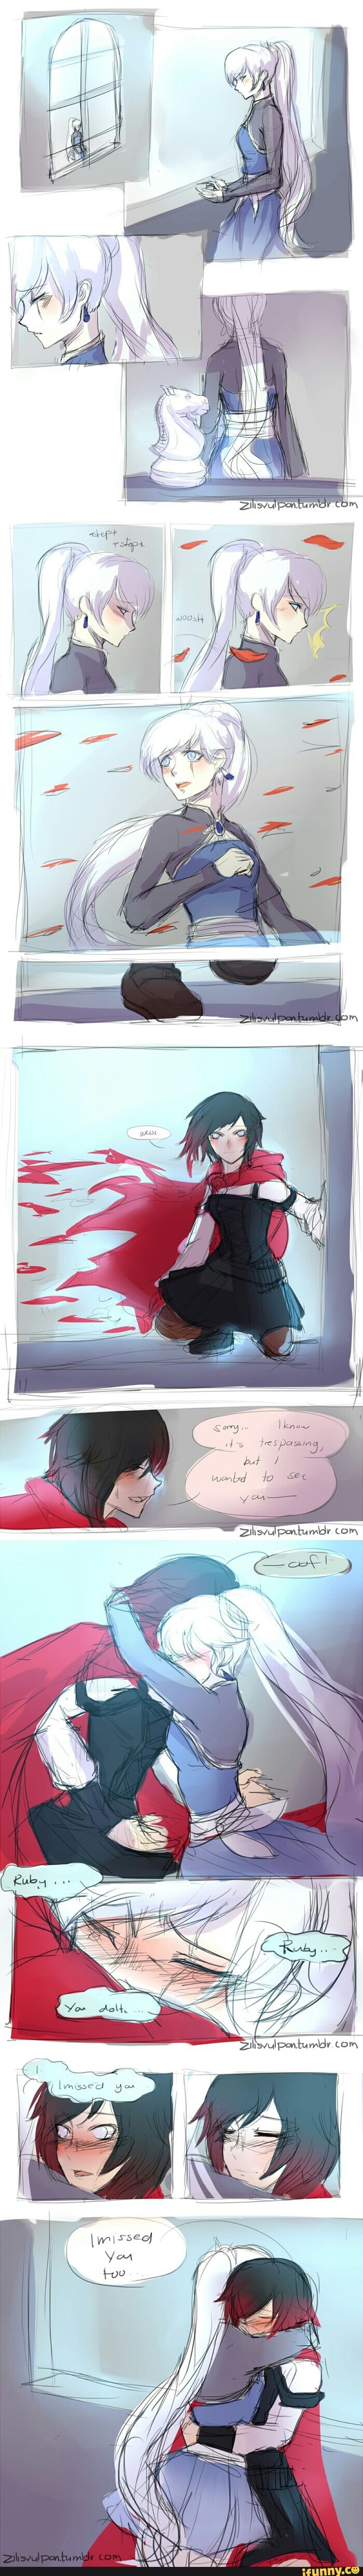 I don't ship them, but I would still love to see this when they reunite. However, I was hoping Weiss would escape.